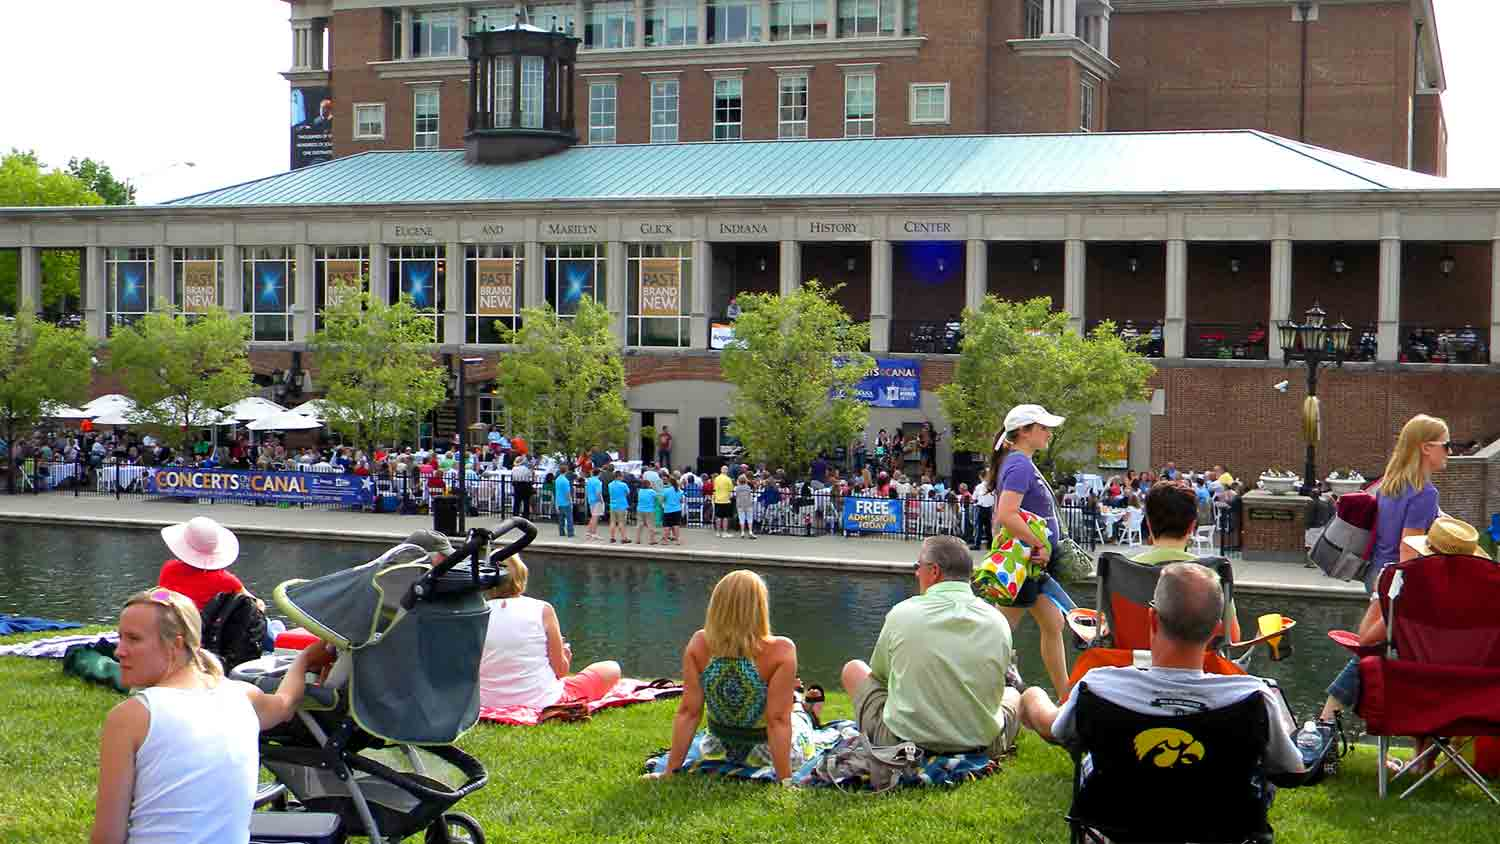 Concerts on the canal 1